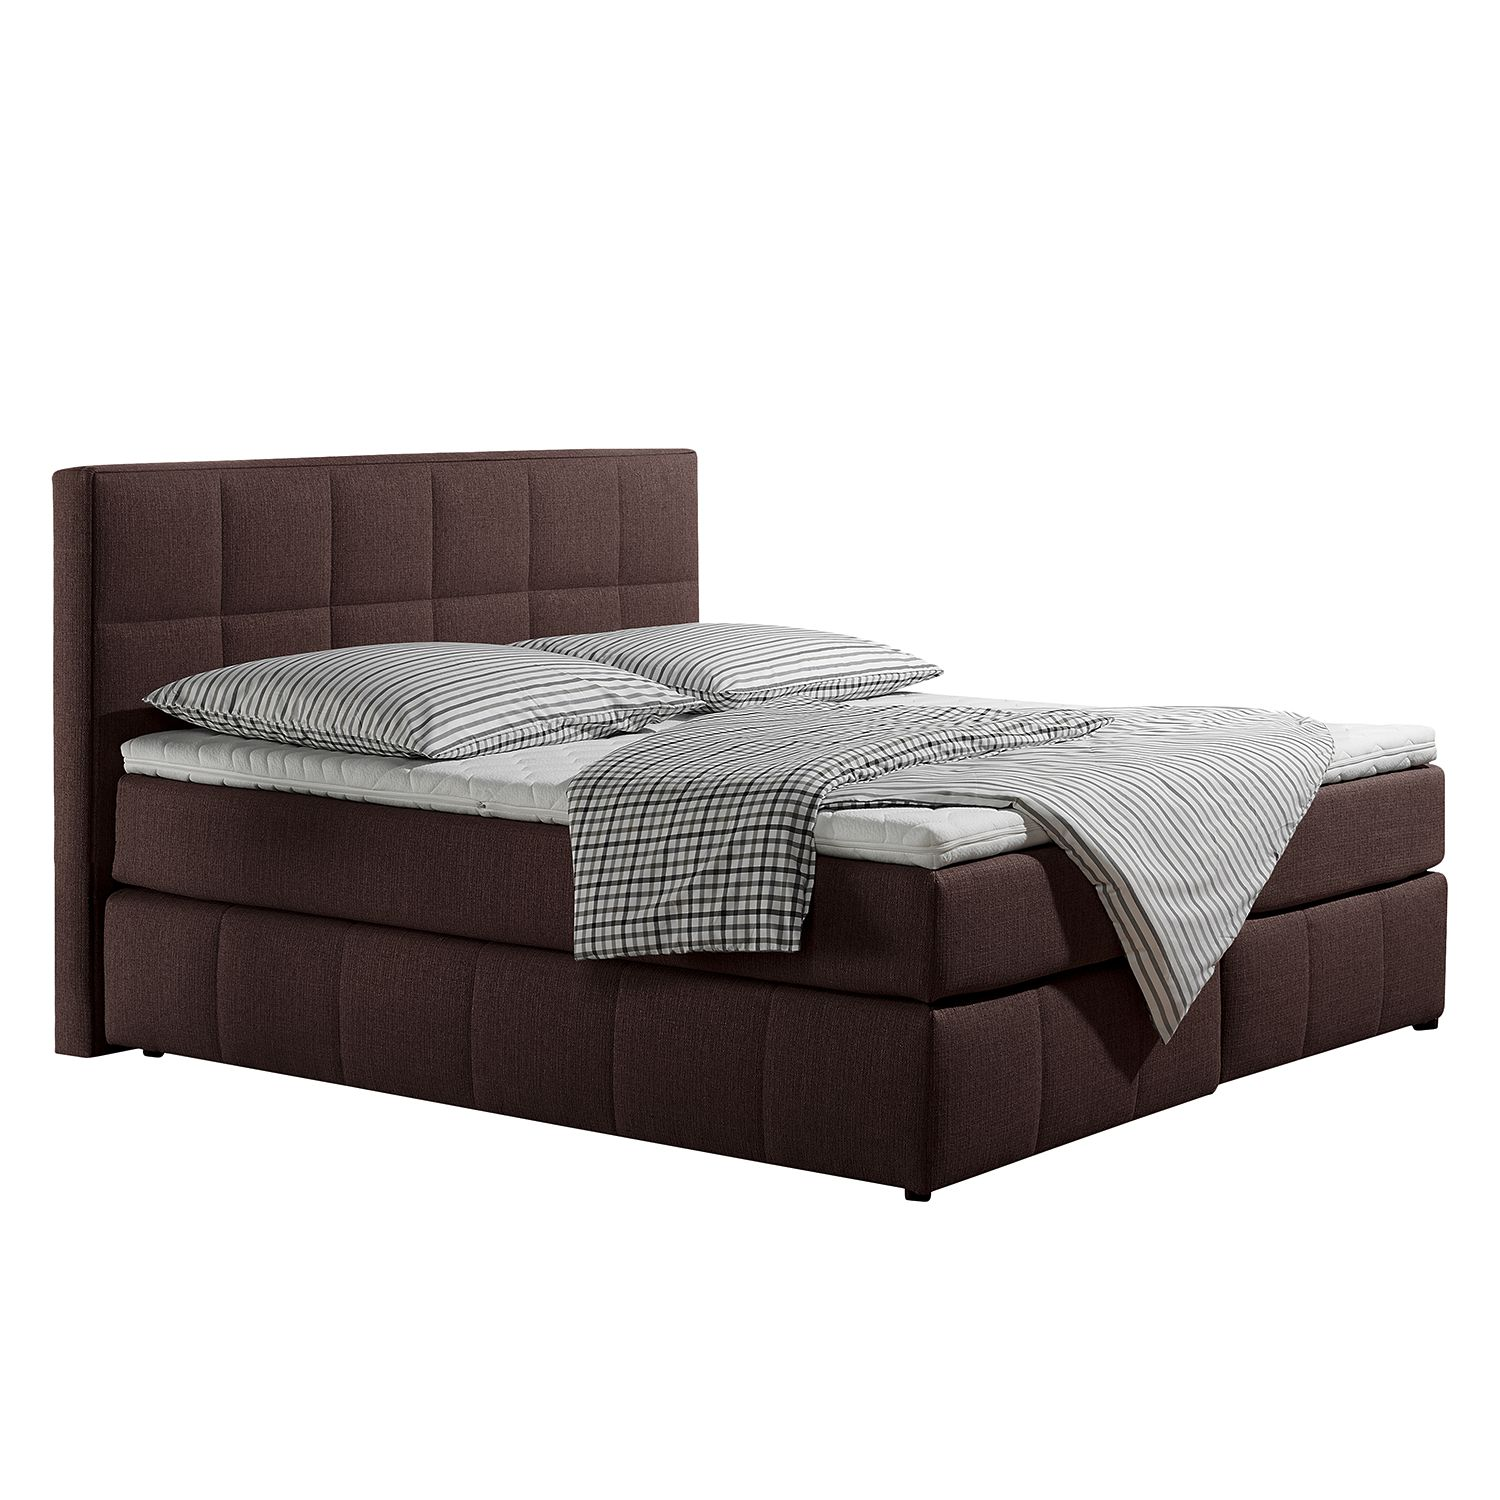 matelas 140x200 ikea malfors foam mattress twin ikea scrapeo matelas ikea h v g ikea. Black Bedroom Furniture Sets. Home Design Ideas